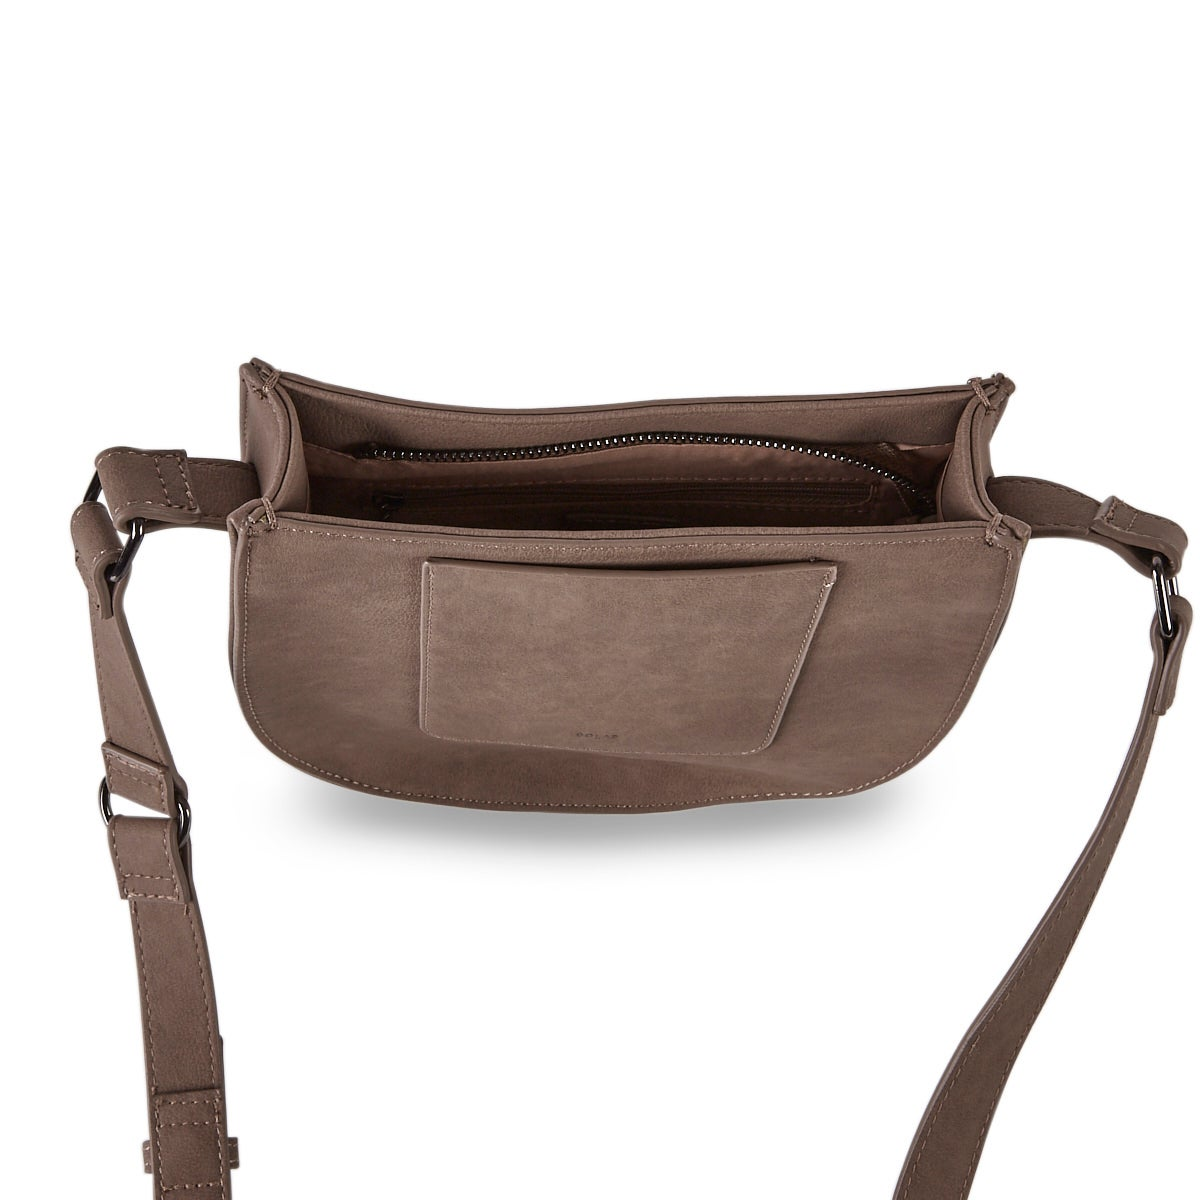 Lds chstnt top zip saddle cross body bag